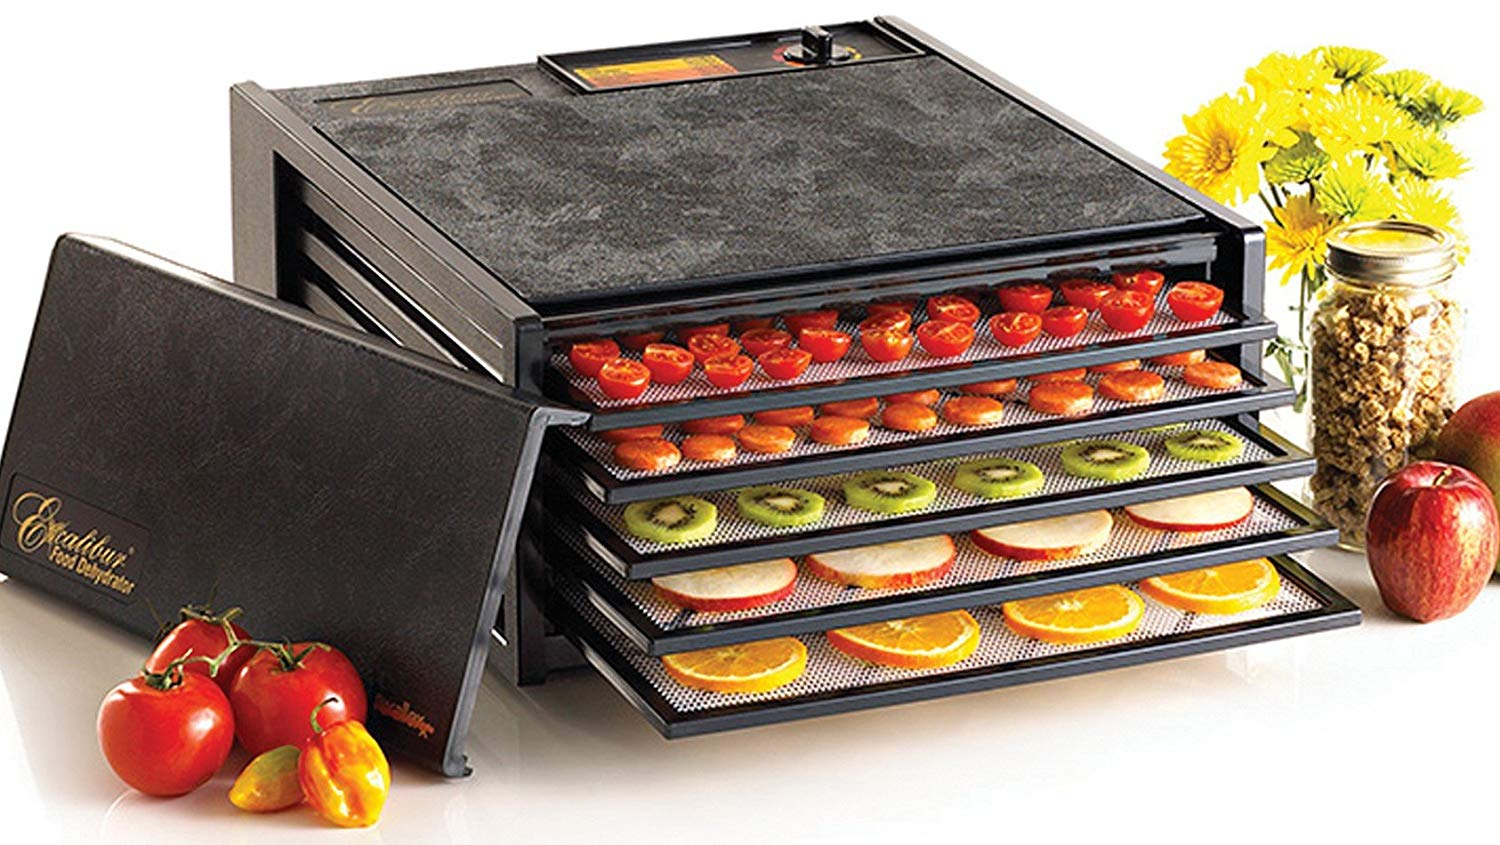 Save $60 and dehydrate fruits, vegetables, meat, and fish to your hearts content with this Excalibur Electric Food Dehydrator (Photo via Amazon)